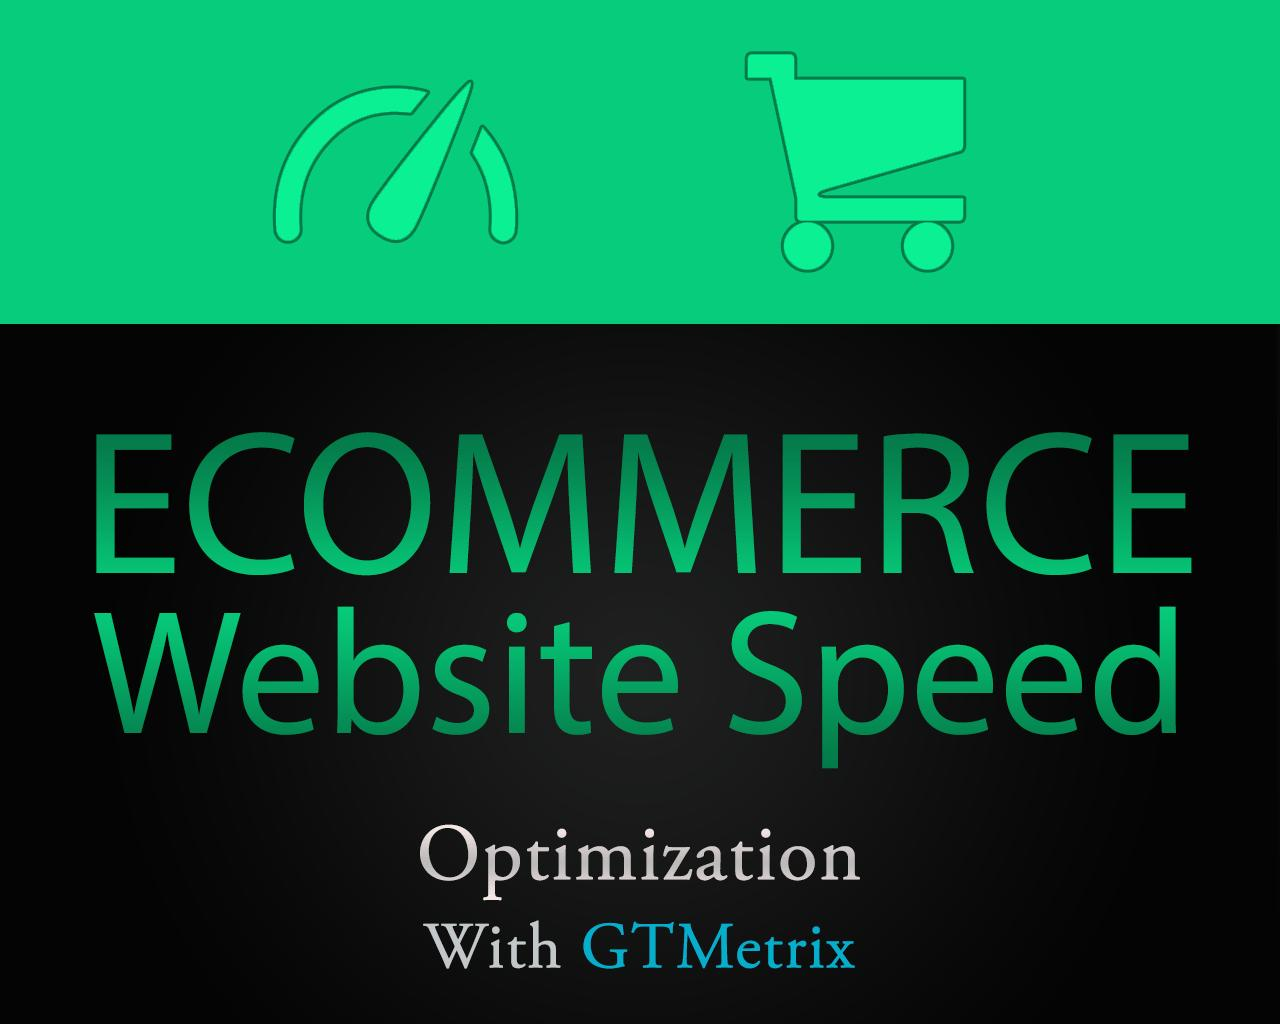 Ecommerce Website Speed Optimization by ScorpionGod - 71117